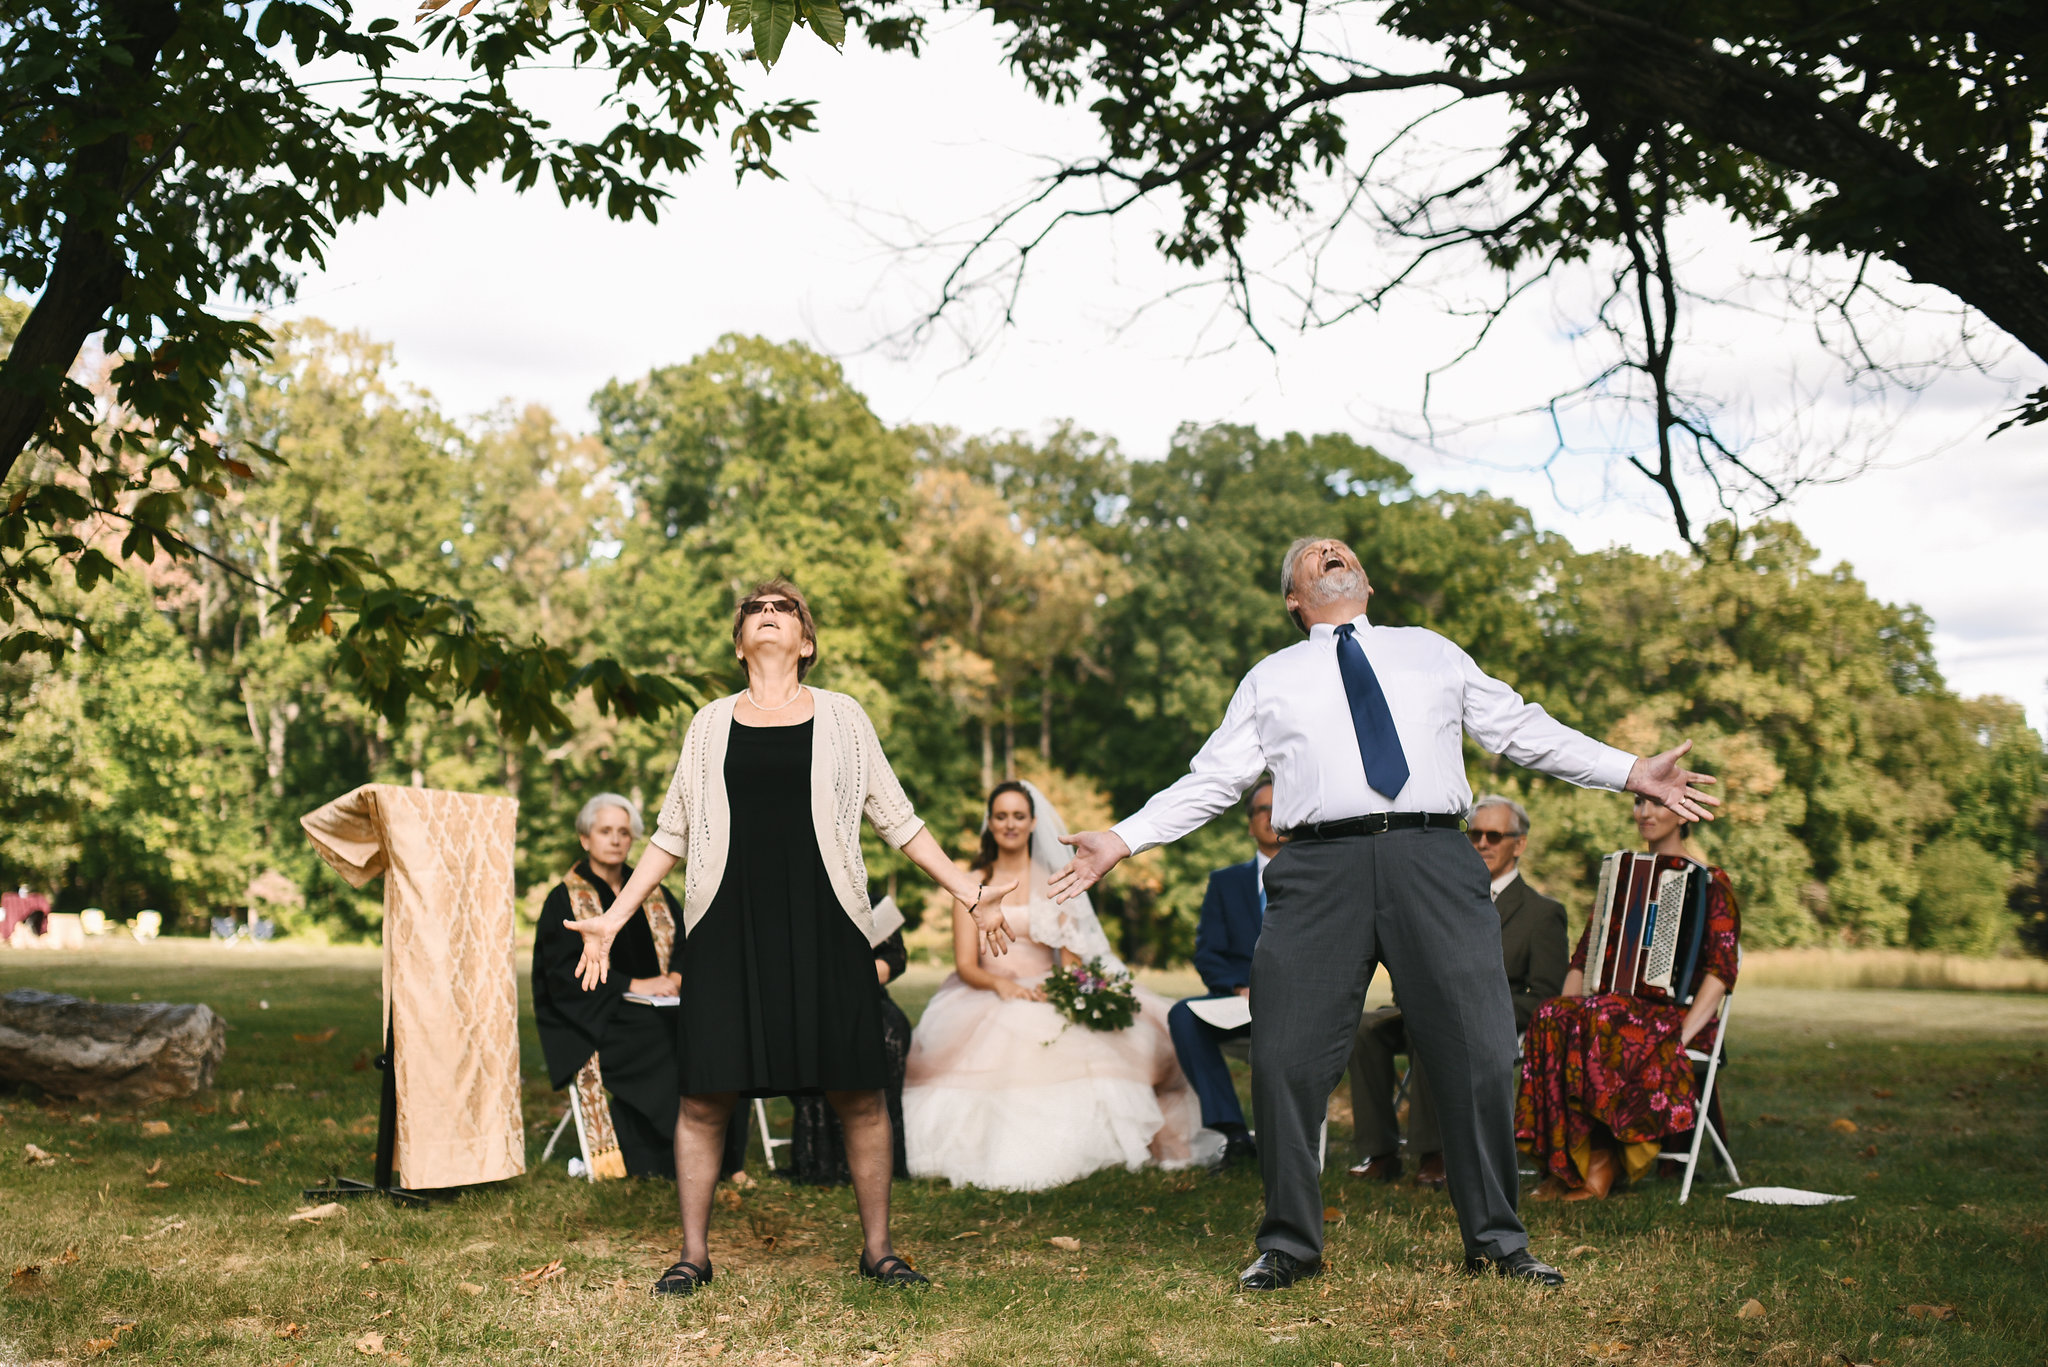 Vintage, DIY, Rustic, Germantown, Baltimore Wedding Photographer, Alternative, Casual, Outdoor Wedding, Church Wedding, Whimsical, Campground, Wedding Ceremony